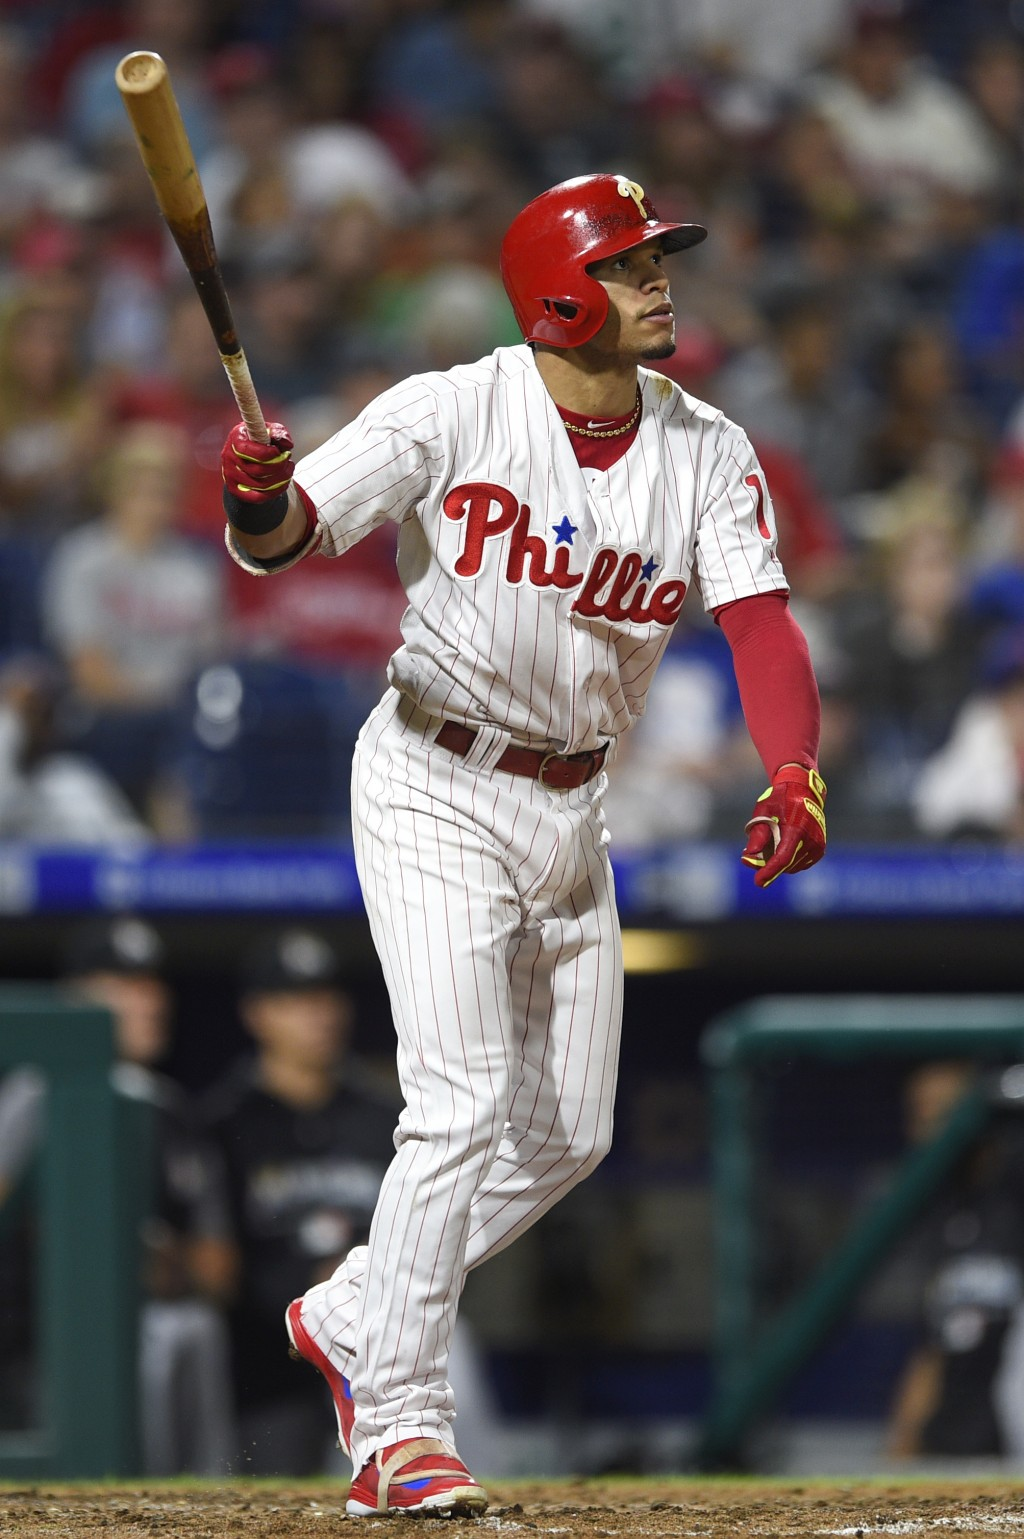 Philadelphia Phillies' Cesar Hernandez watches his three-run home run off Miami Marlins' Drew Rucinski during the fifth inning of a baseball game, Sat